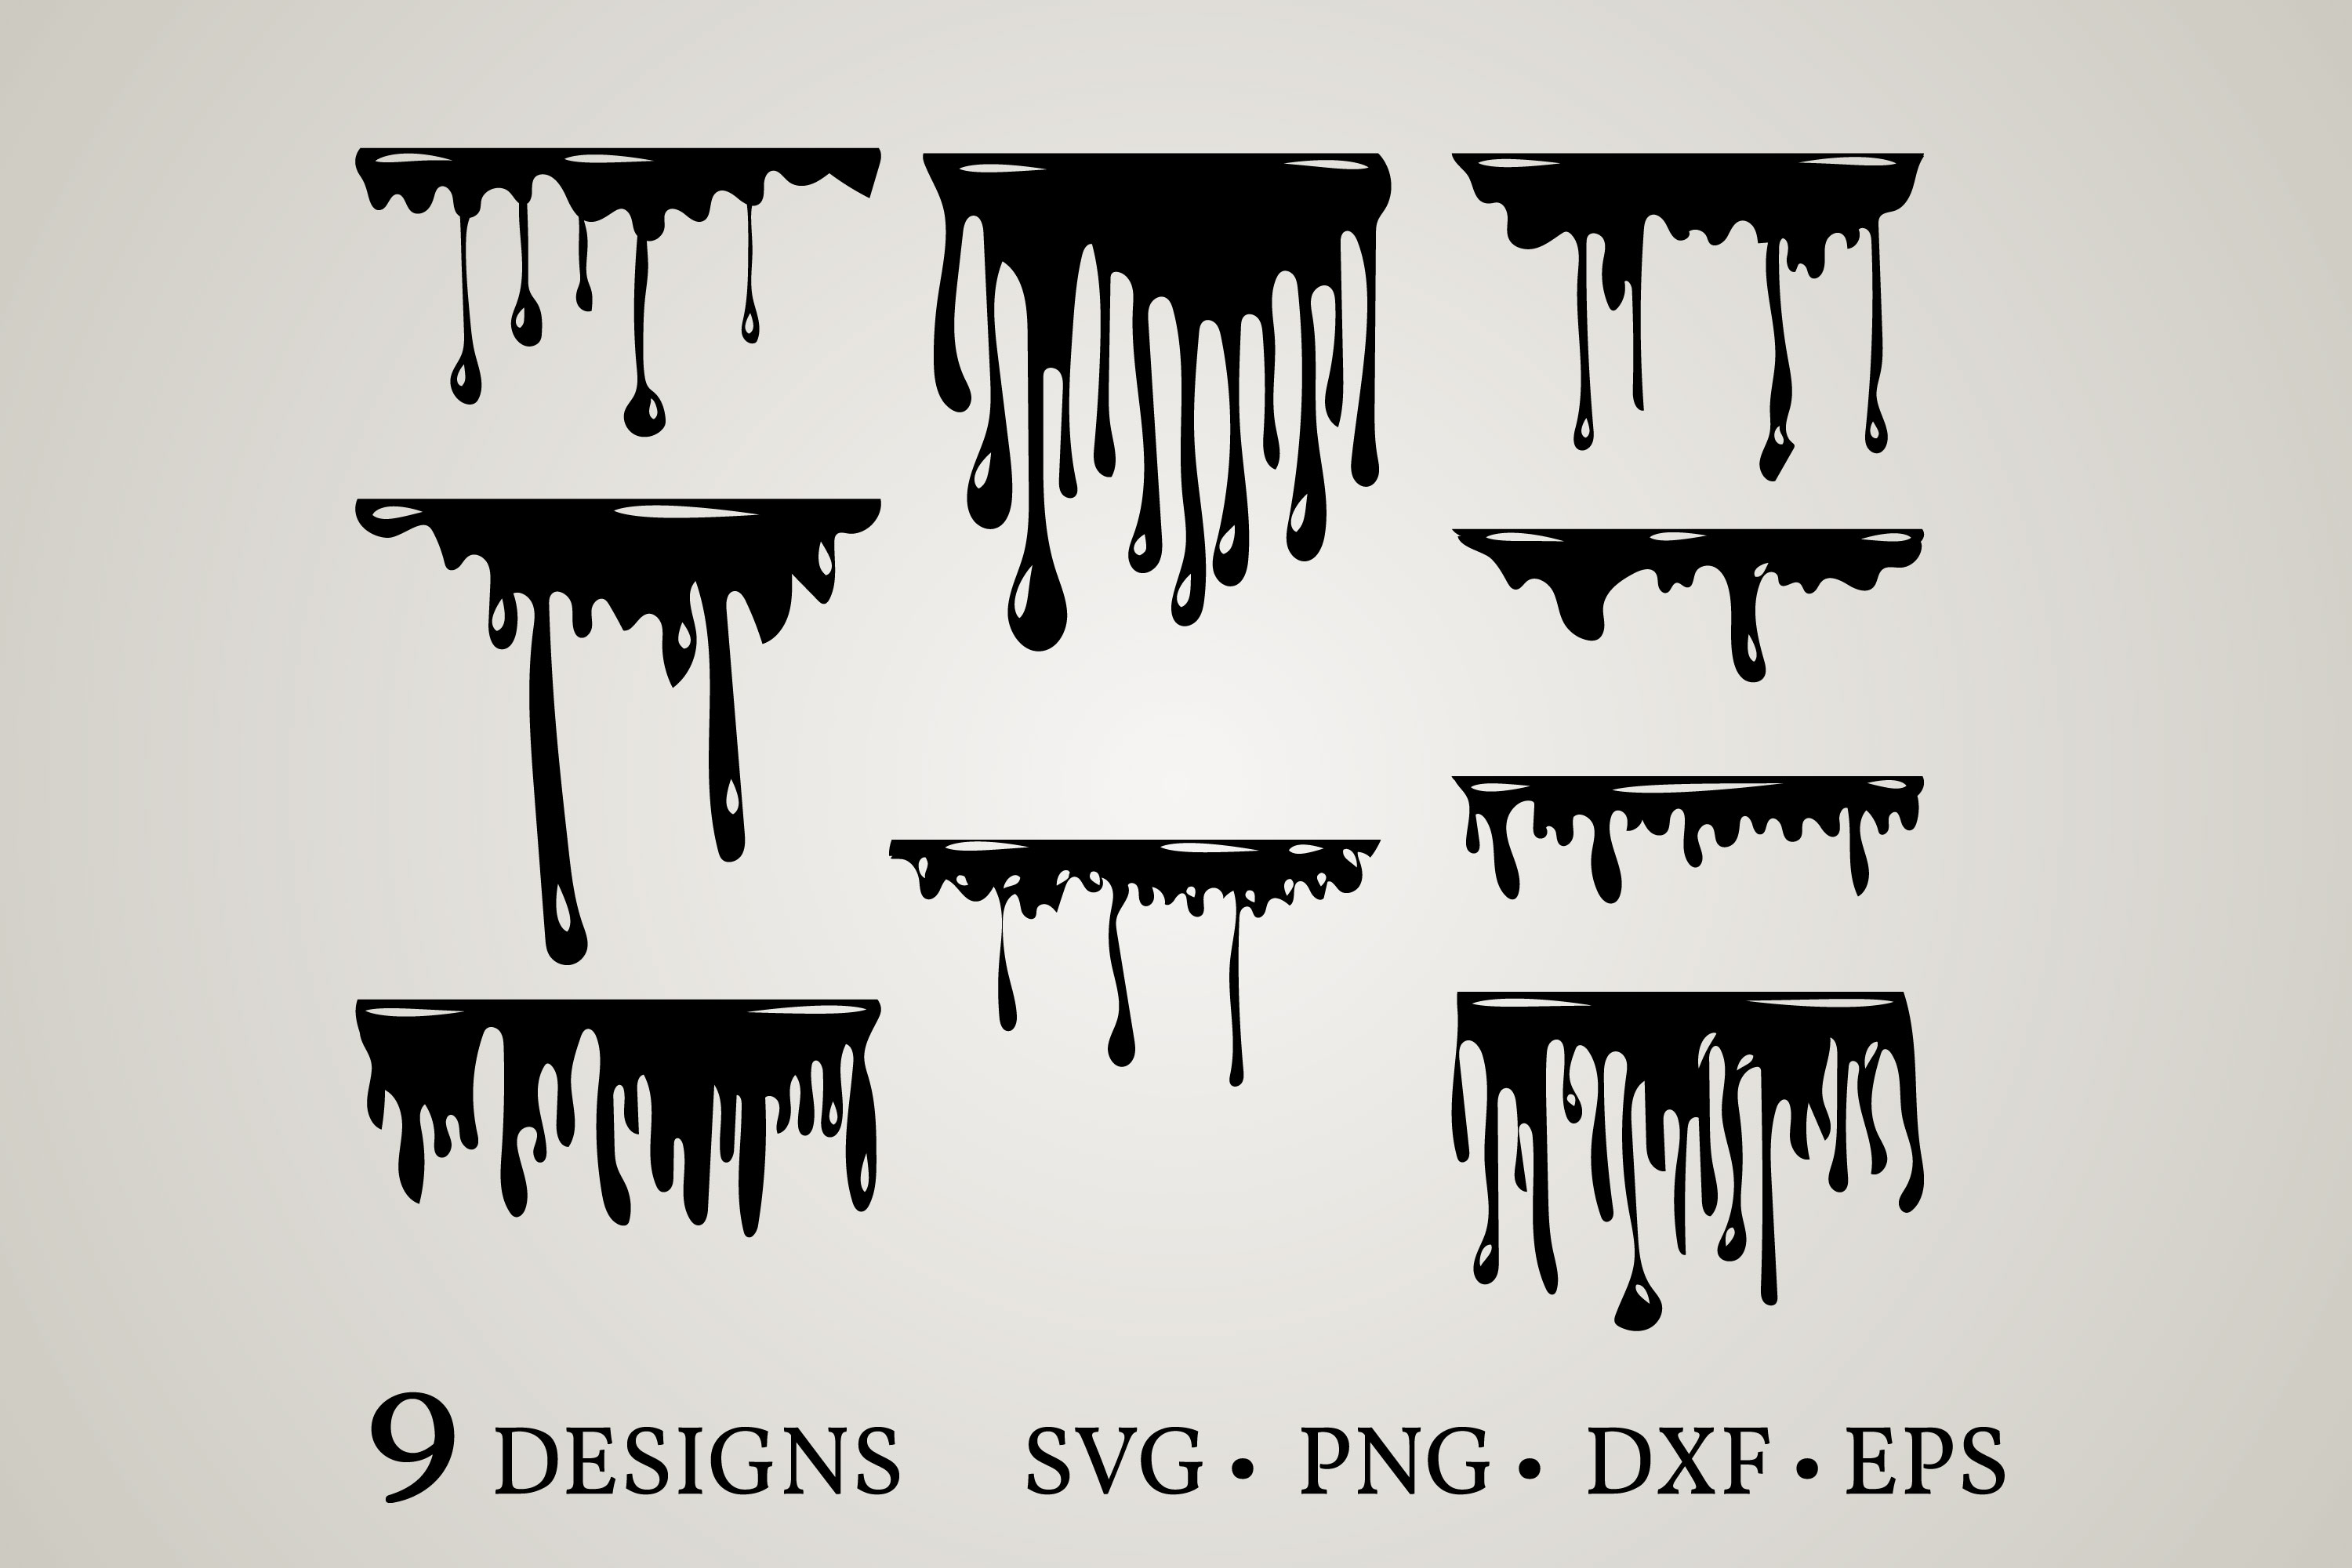 Download Free Dripping Borders Graphic By Euphoria Design Creative Fabrica for Cricut Explore, Silhouette and other cutting machines.